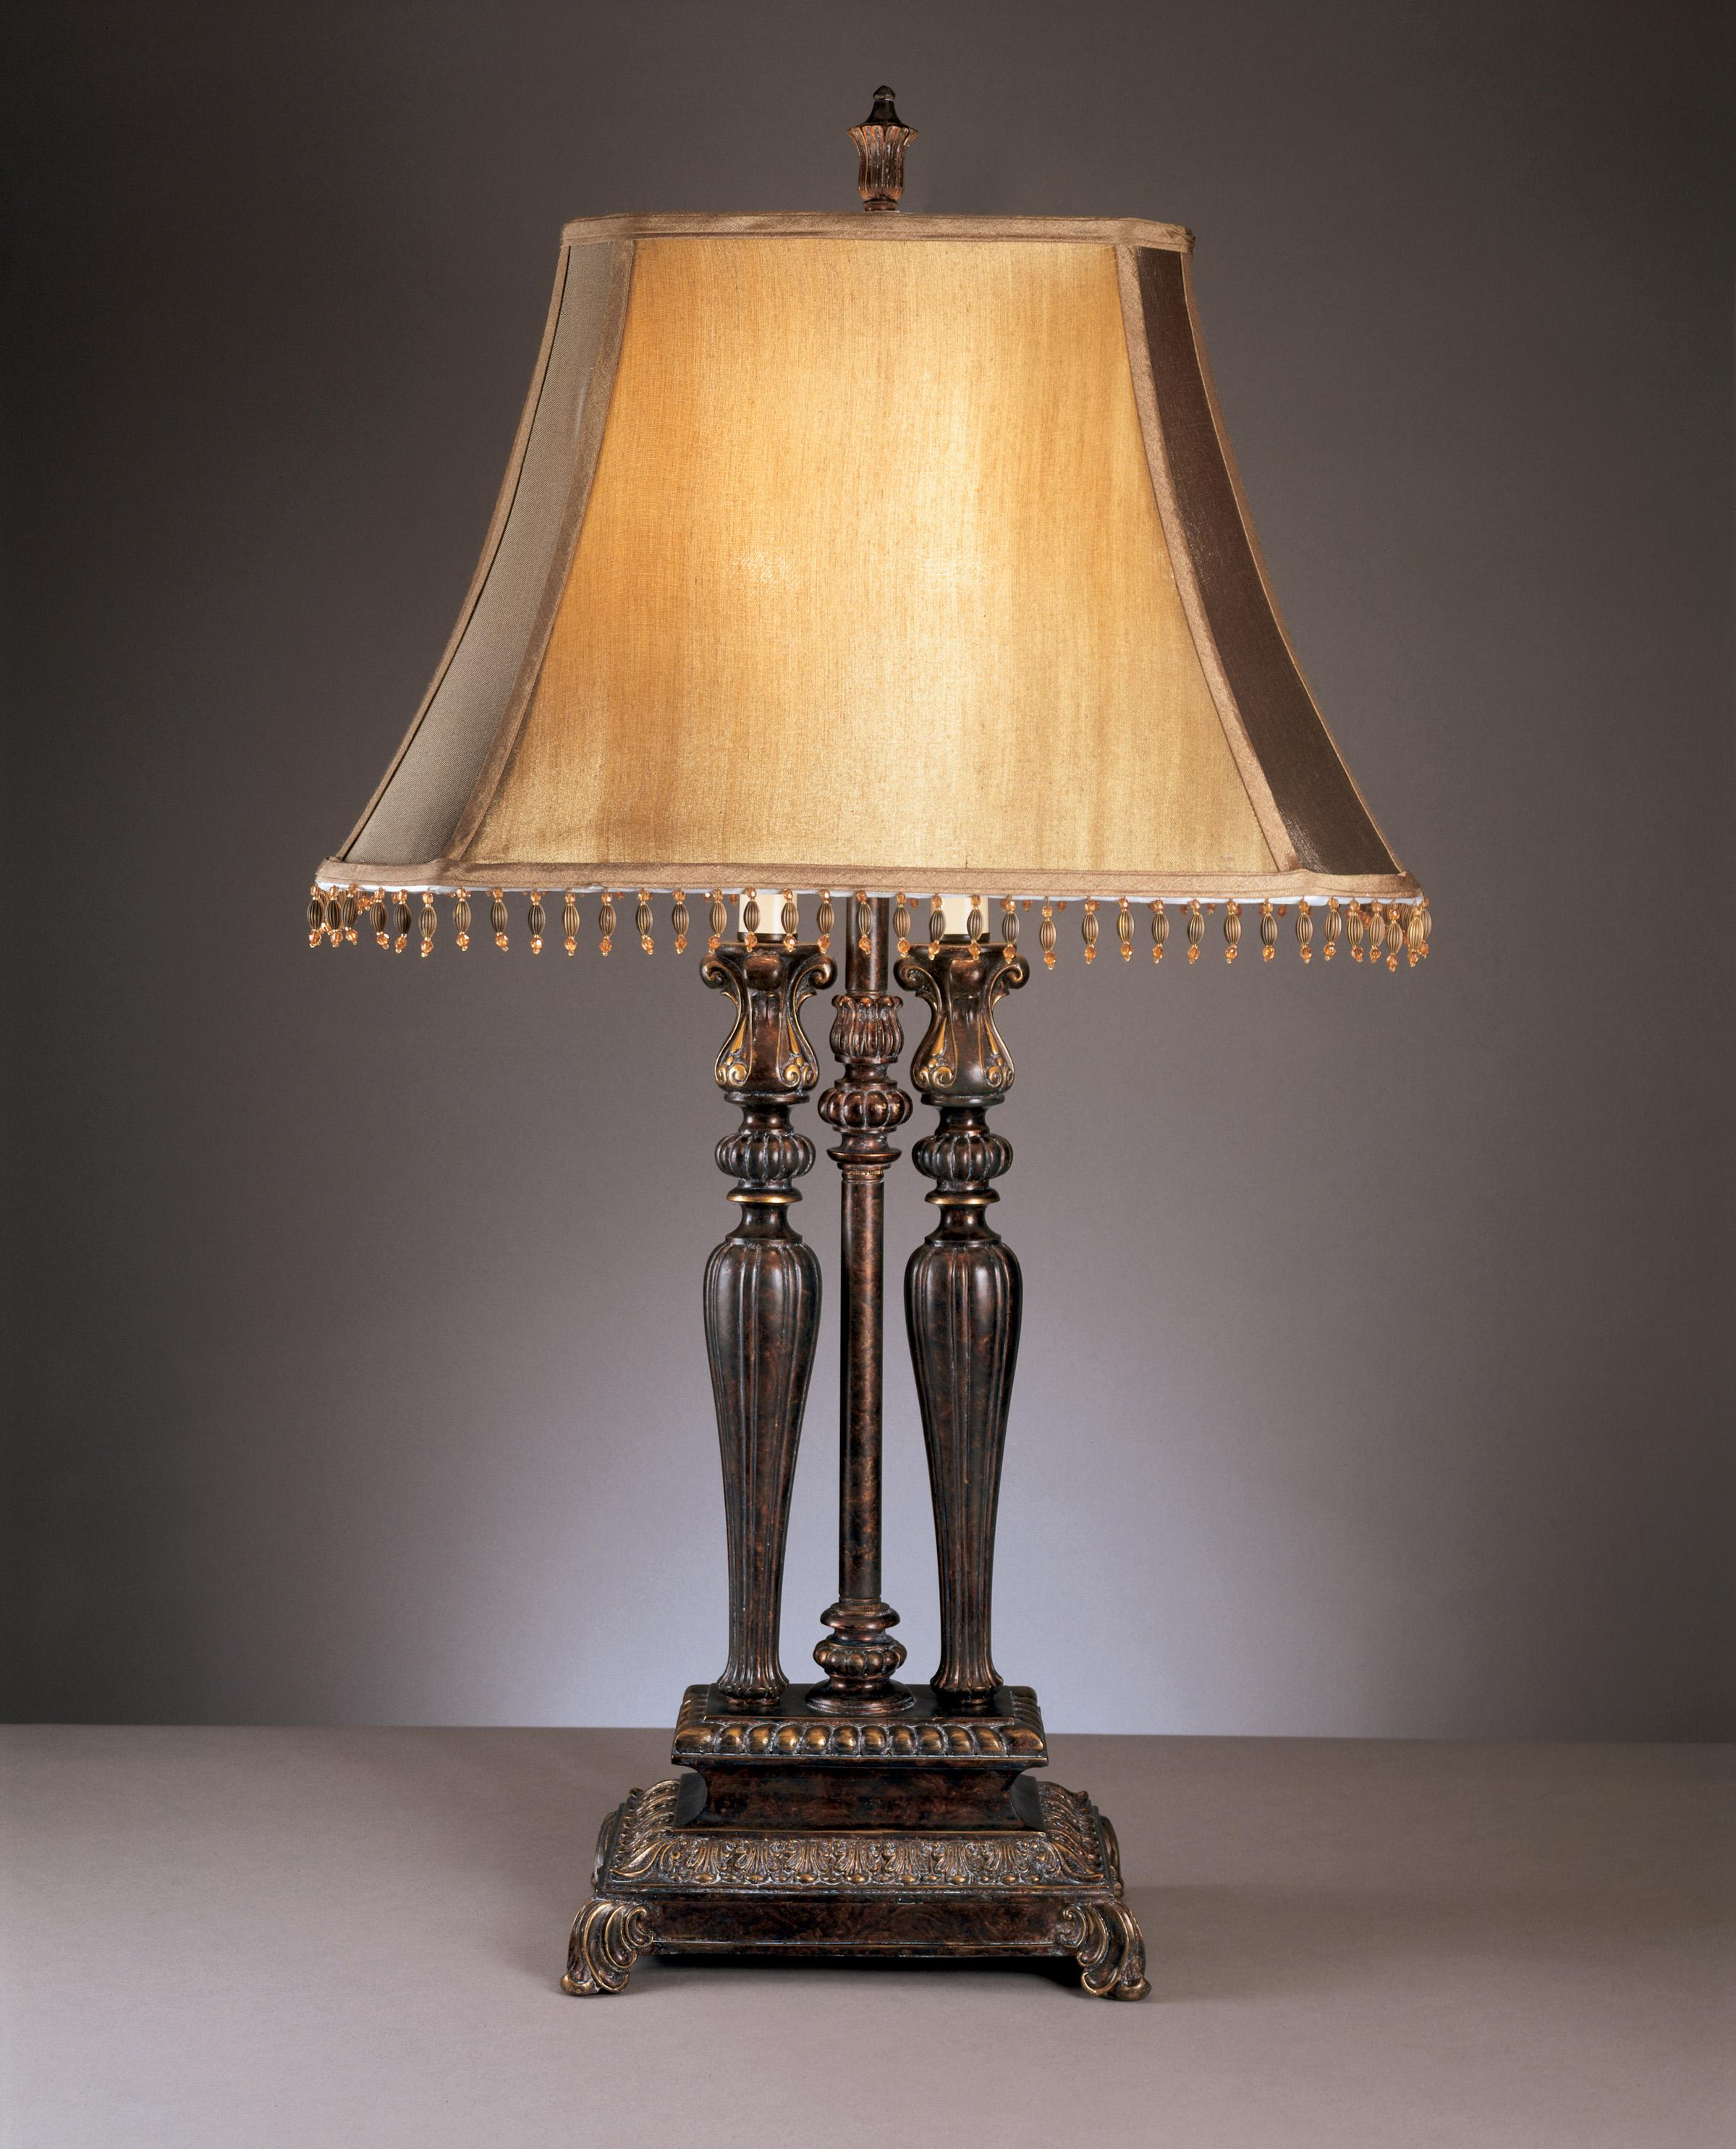 Signature Design by Ashley Lamps - Traditional Classics Set of 2 Desana Table Lamps - Item Number: L370974